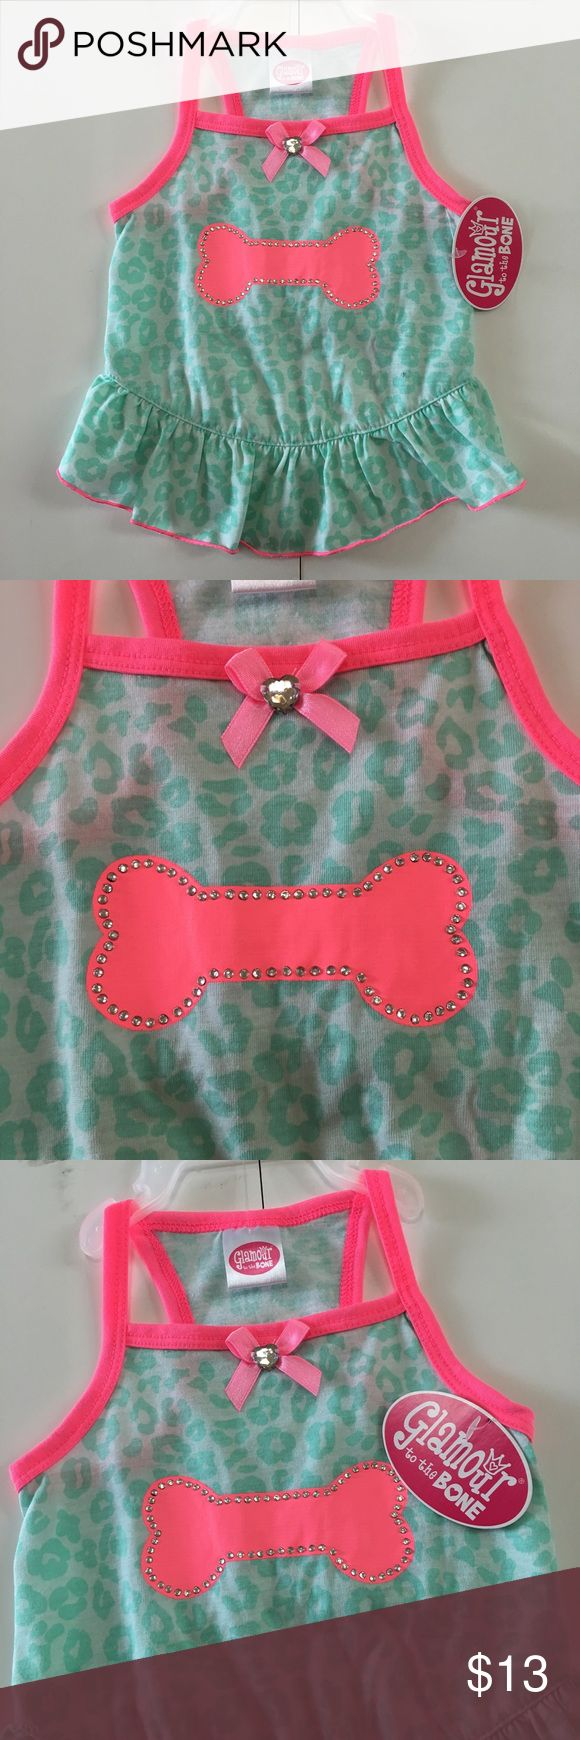 "Dog puppy dress Bone pink green cheetah outfit Dog pet dress outfit ✨ Glamour to the Bone ✨ cutest dress for your little baby girl ✨ mint green cheetah pink trim ✨ pink bone with rhinestones ✨ chest pit to pit 8.5"" , length 10"" ✨ see my other dog dresses Glamour to the Bone Other"